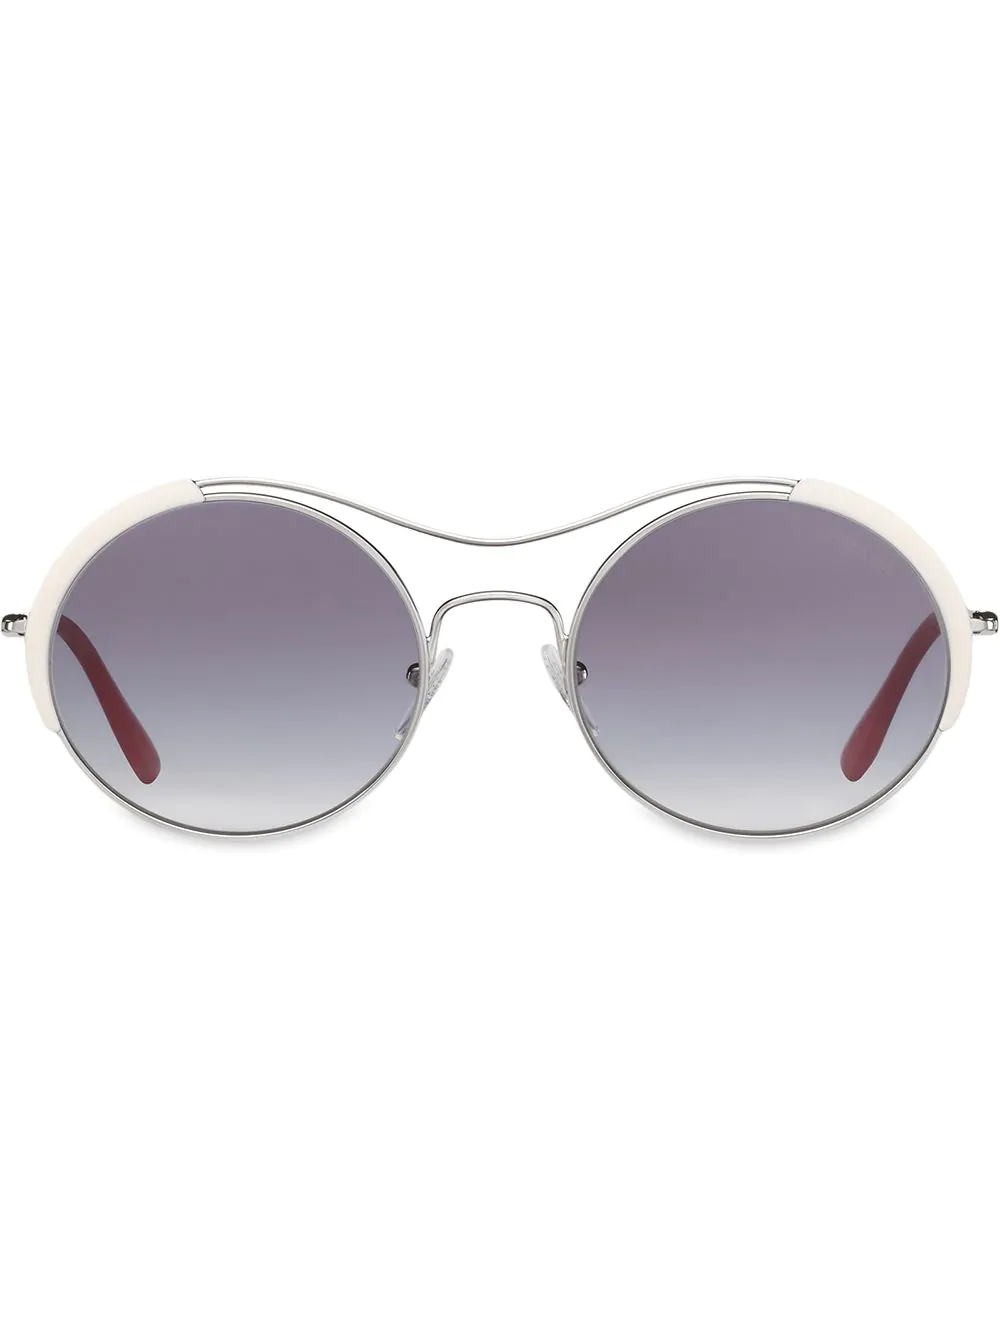 98547f7222c Prada Eyewear Round Shaped Sunglasses - White